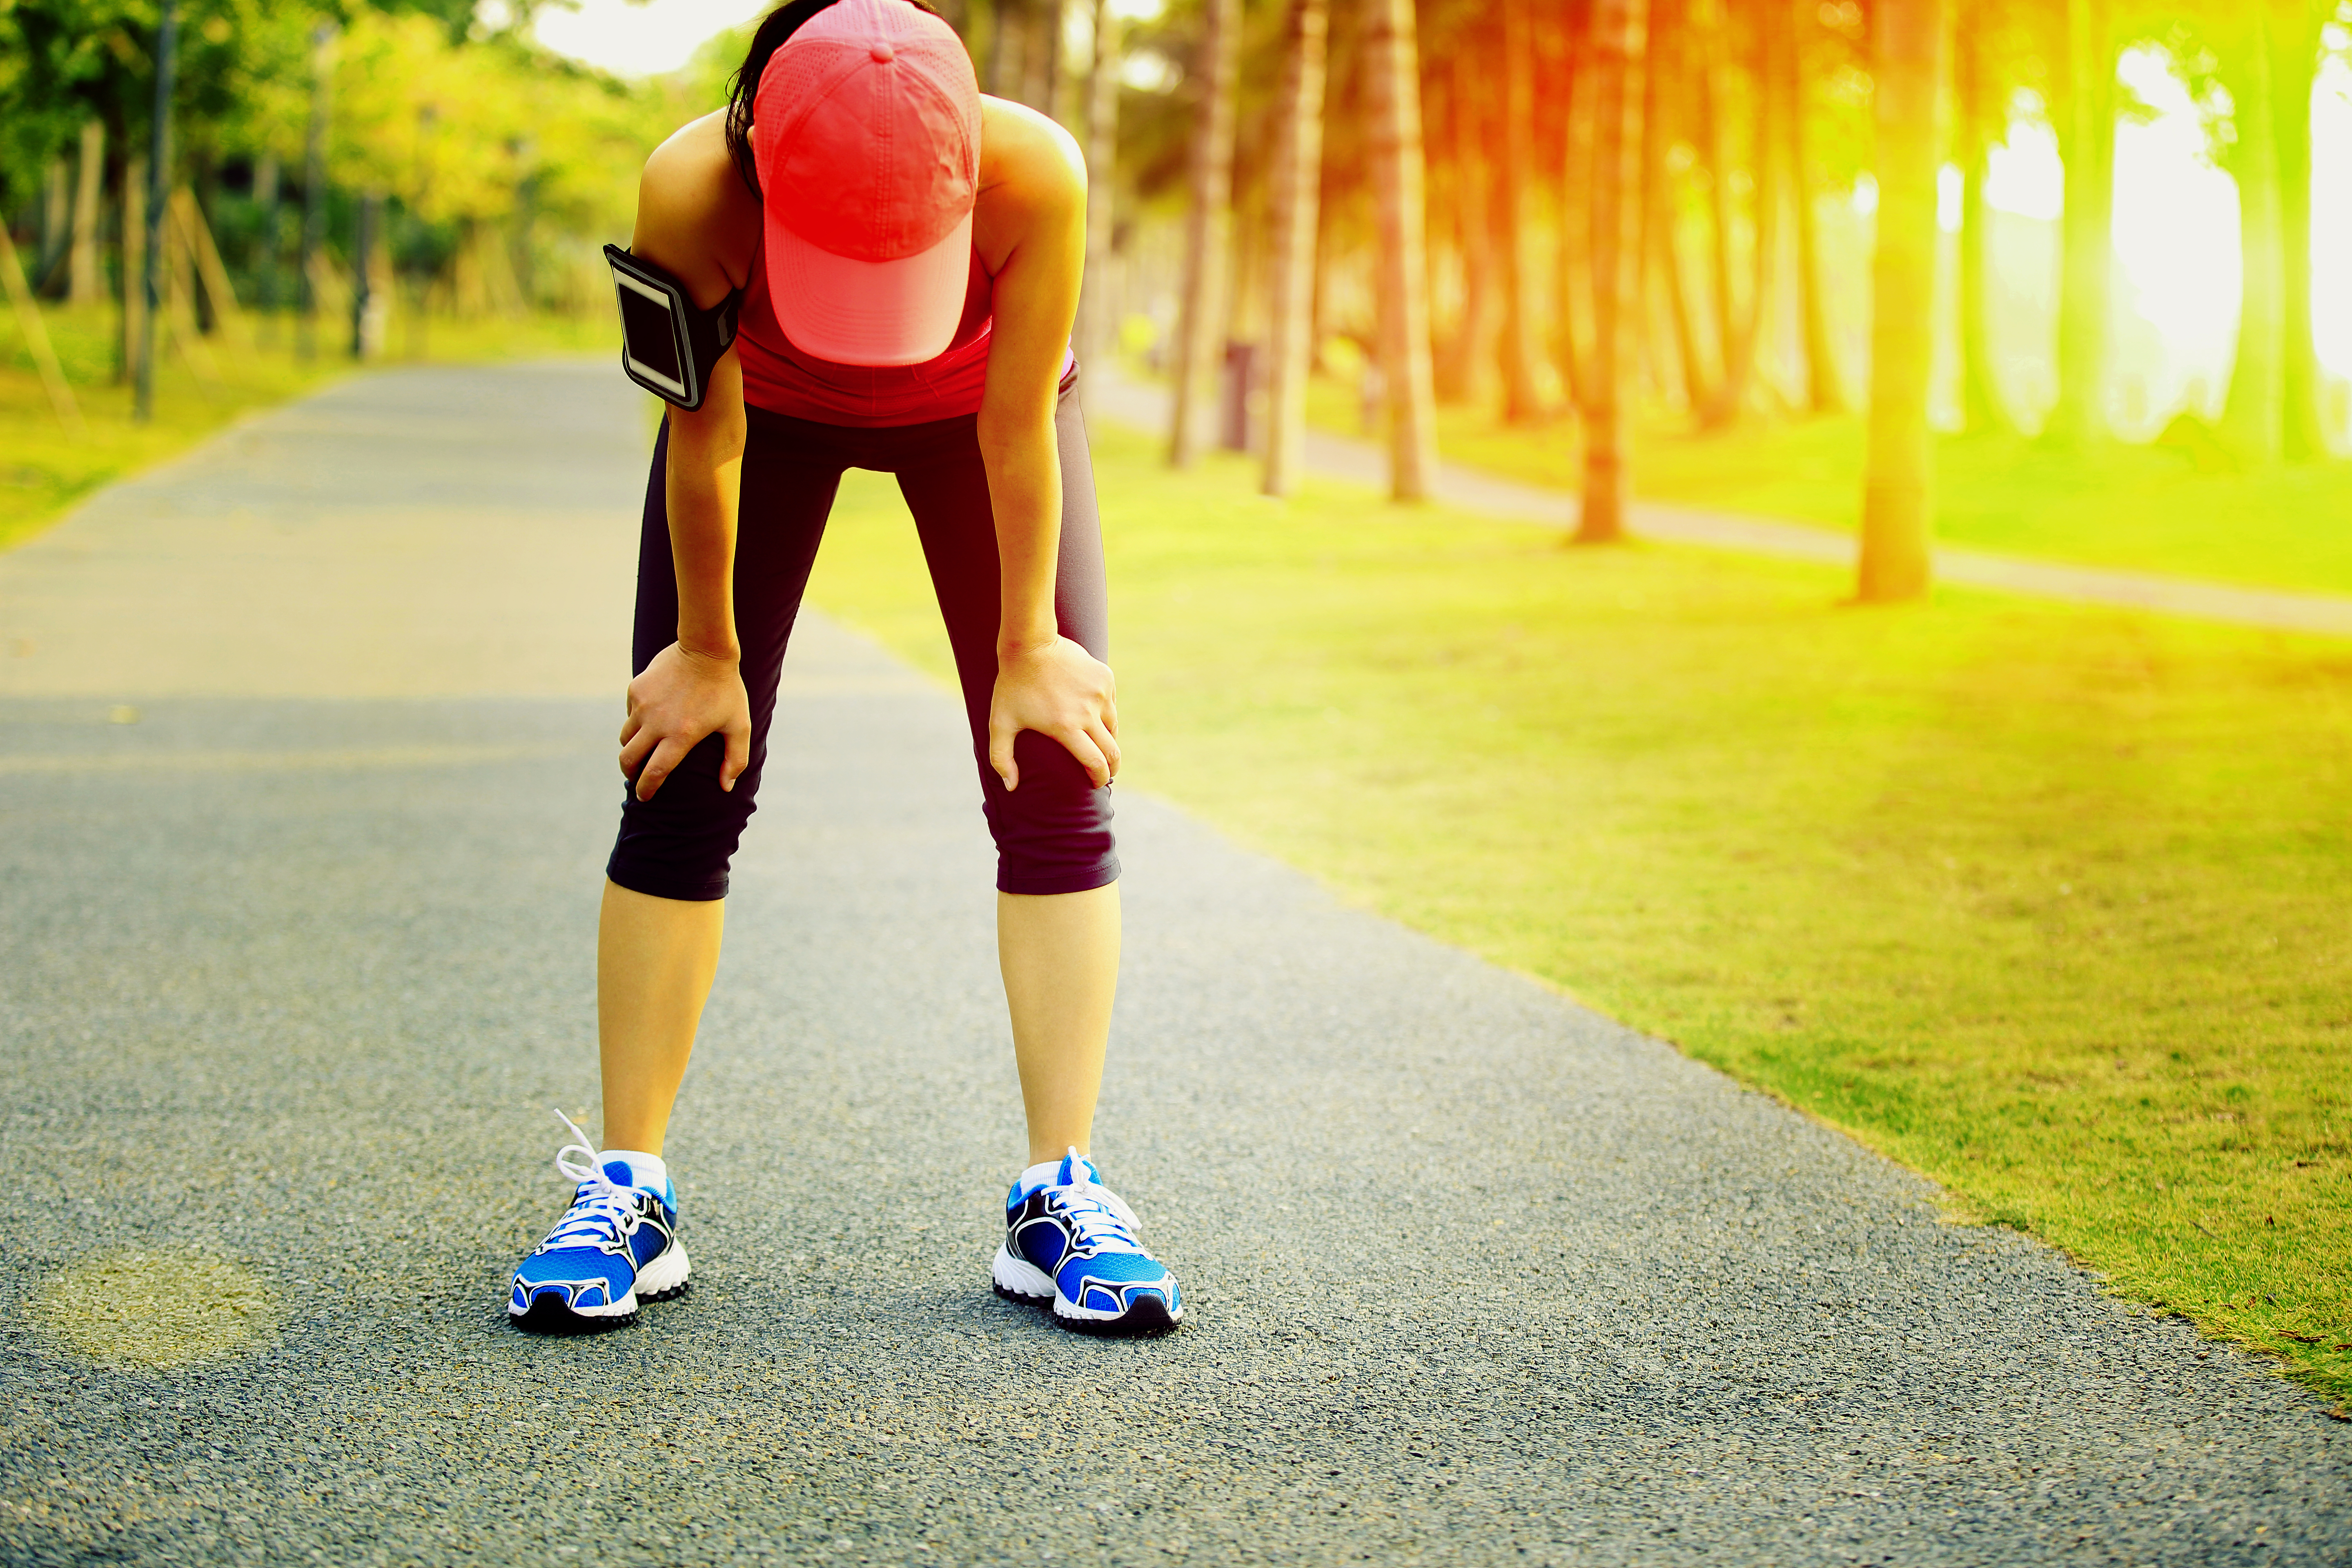 You can actually be allergic to exercise